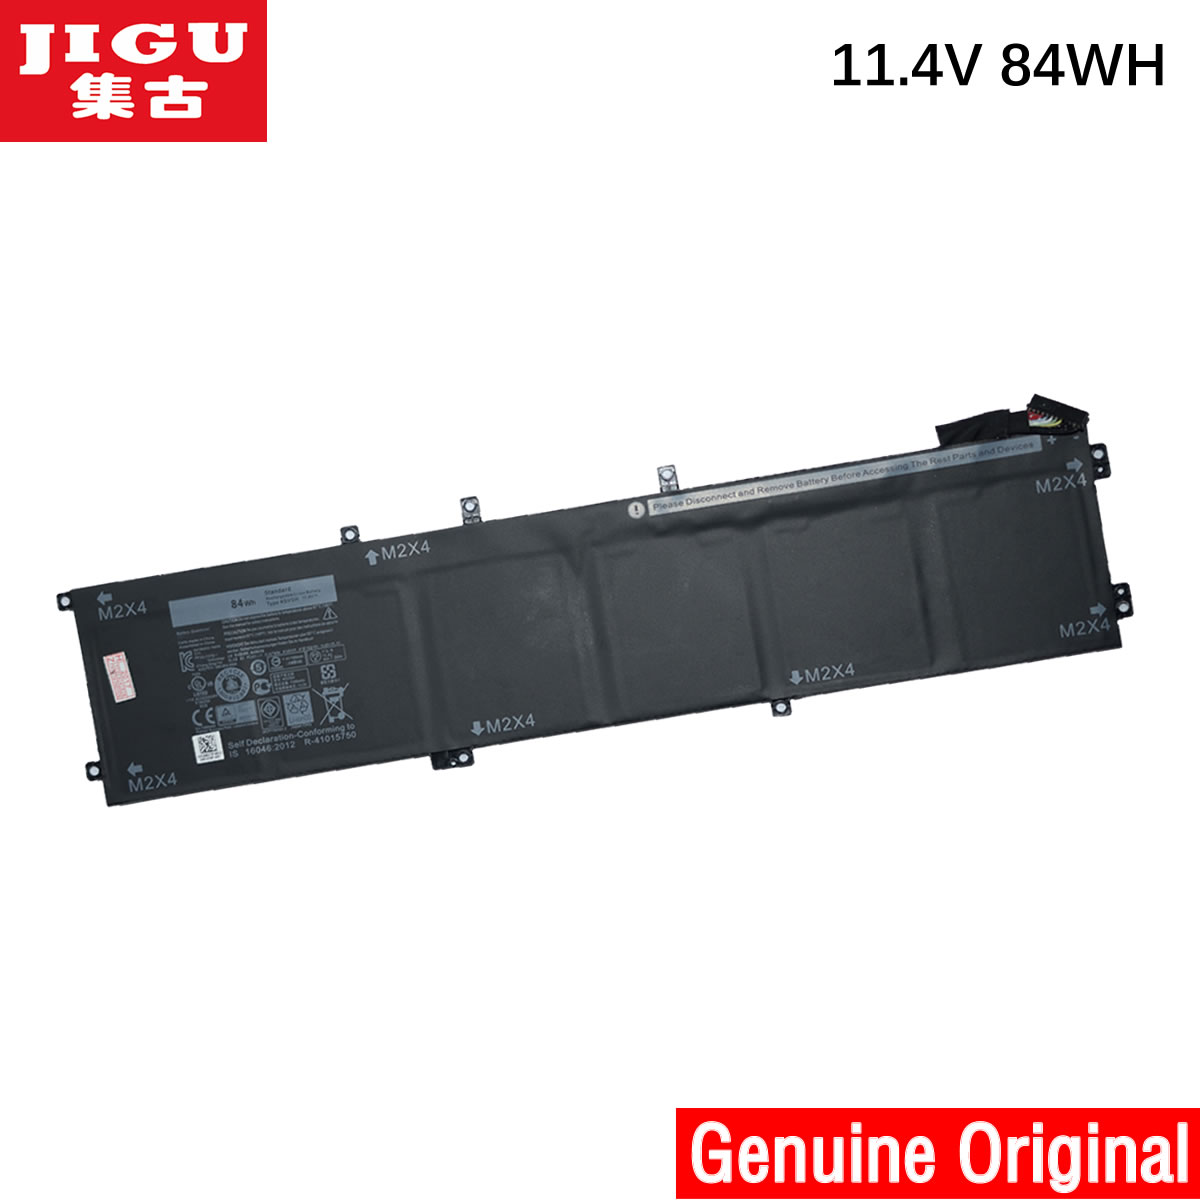 JIGU Original Laptop Battery 1P6KD 4GVGH RRCGW For DELL For Precision 5510 XPS 15 9550 XPS15 9550 genuine new for dell precision 5510 xps15 9550 hdd hard drive connector cable xdygx 0xdygx dc02c00bl00